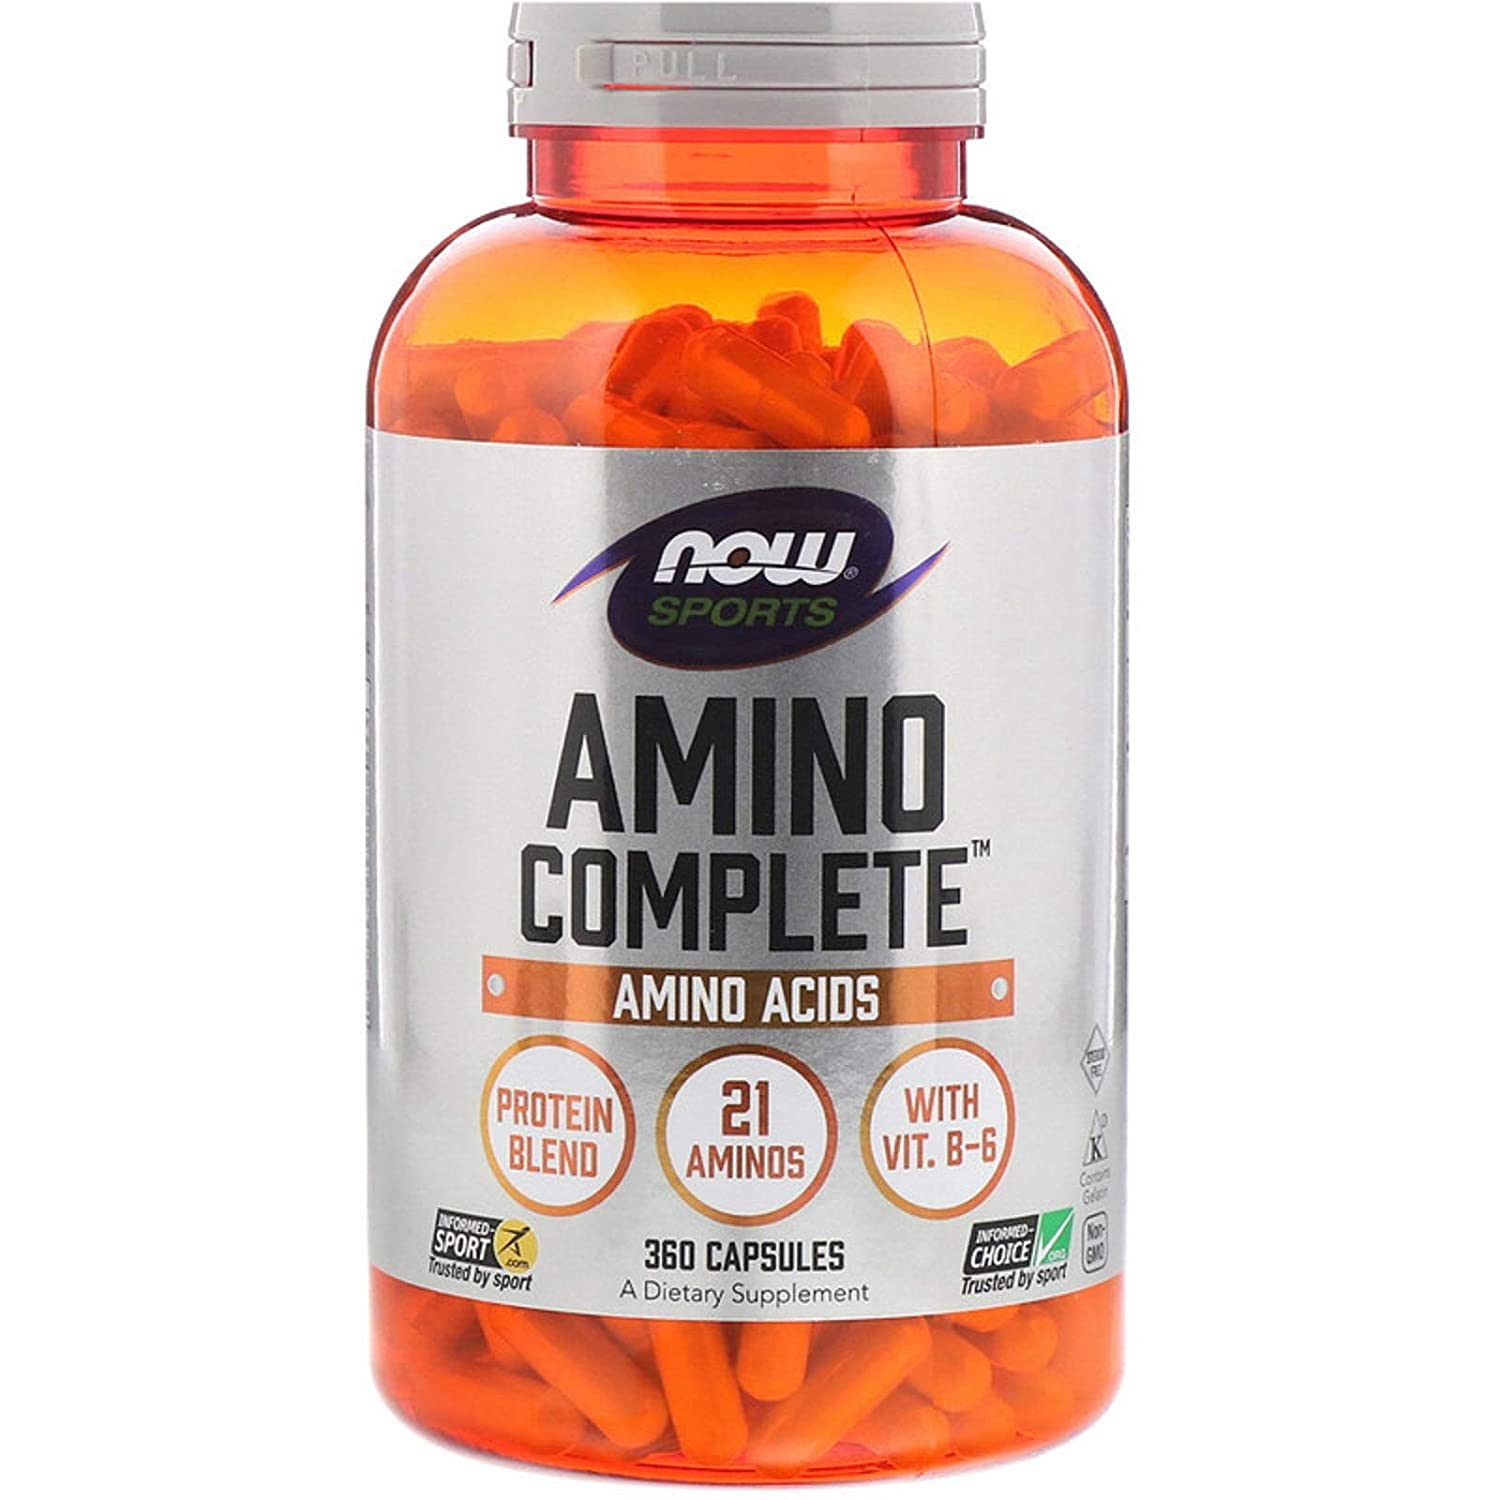 Amino Complete Protein Blend 21 Aminos with Vitamin B-6 Free-Form Amino Acids 360 Capsules